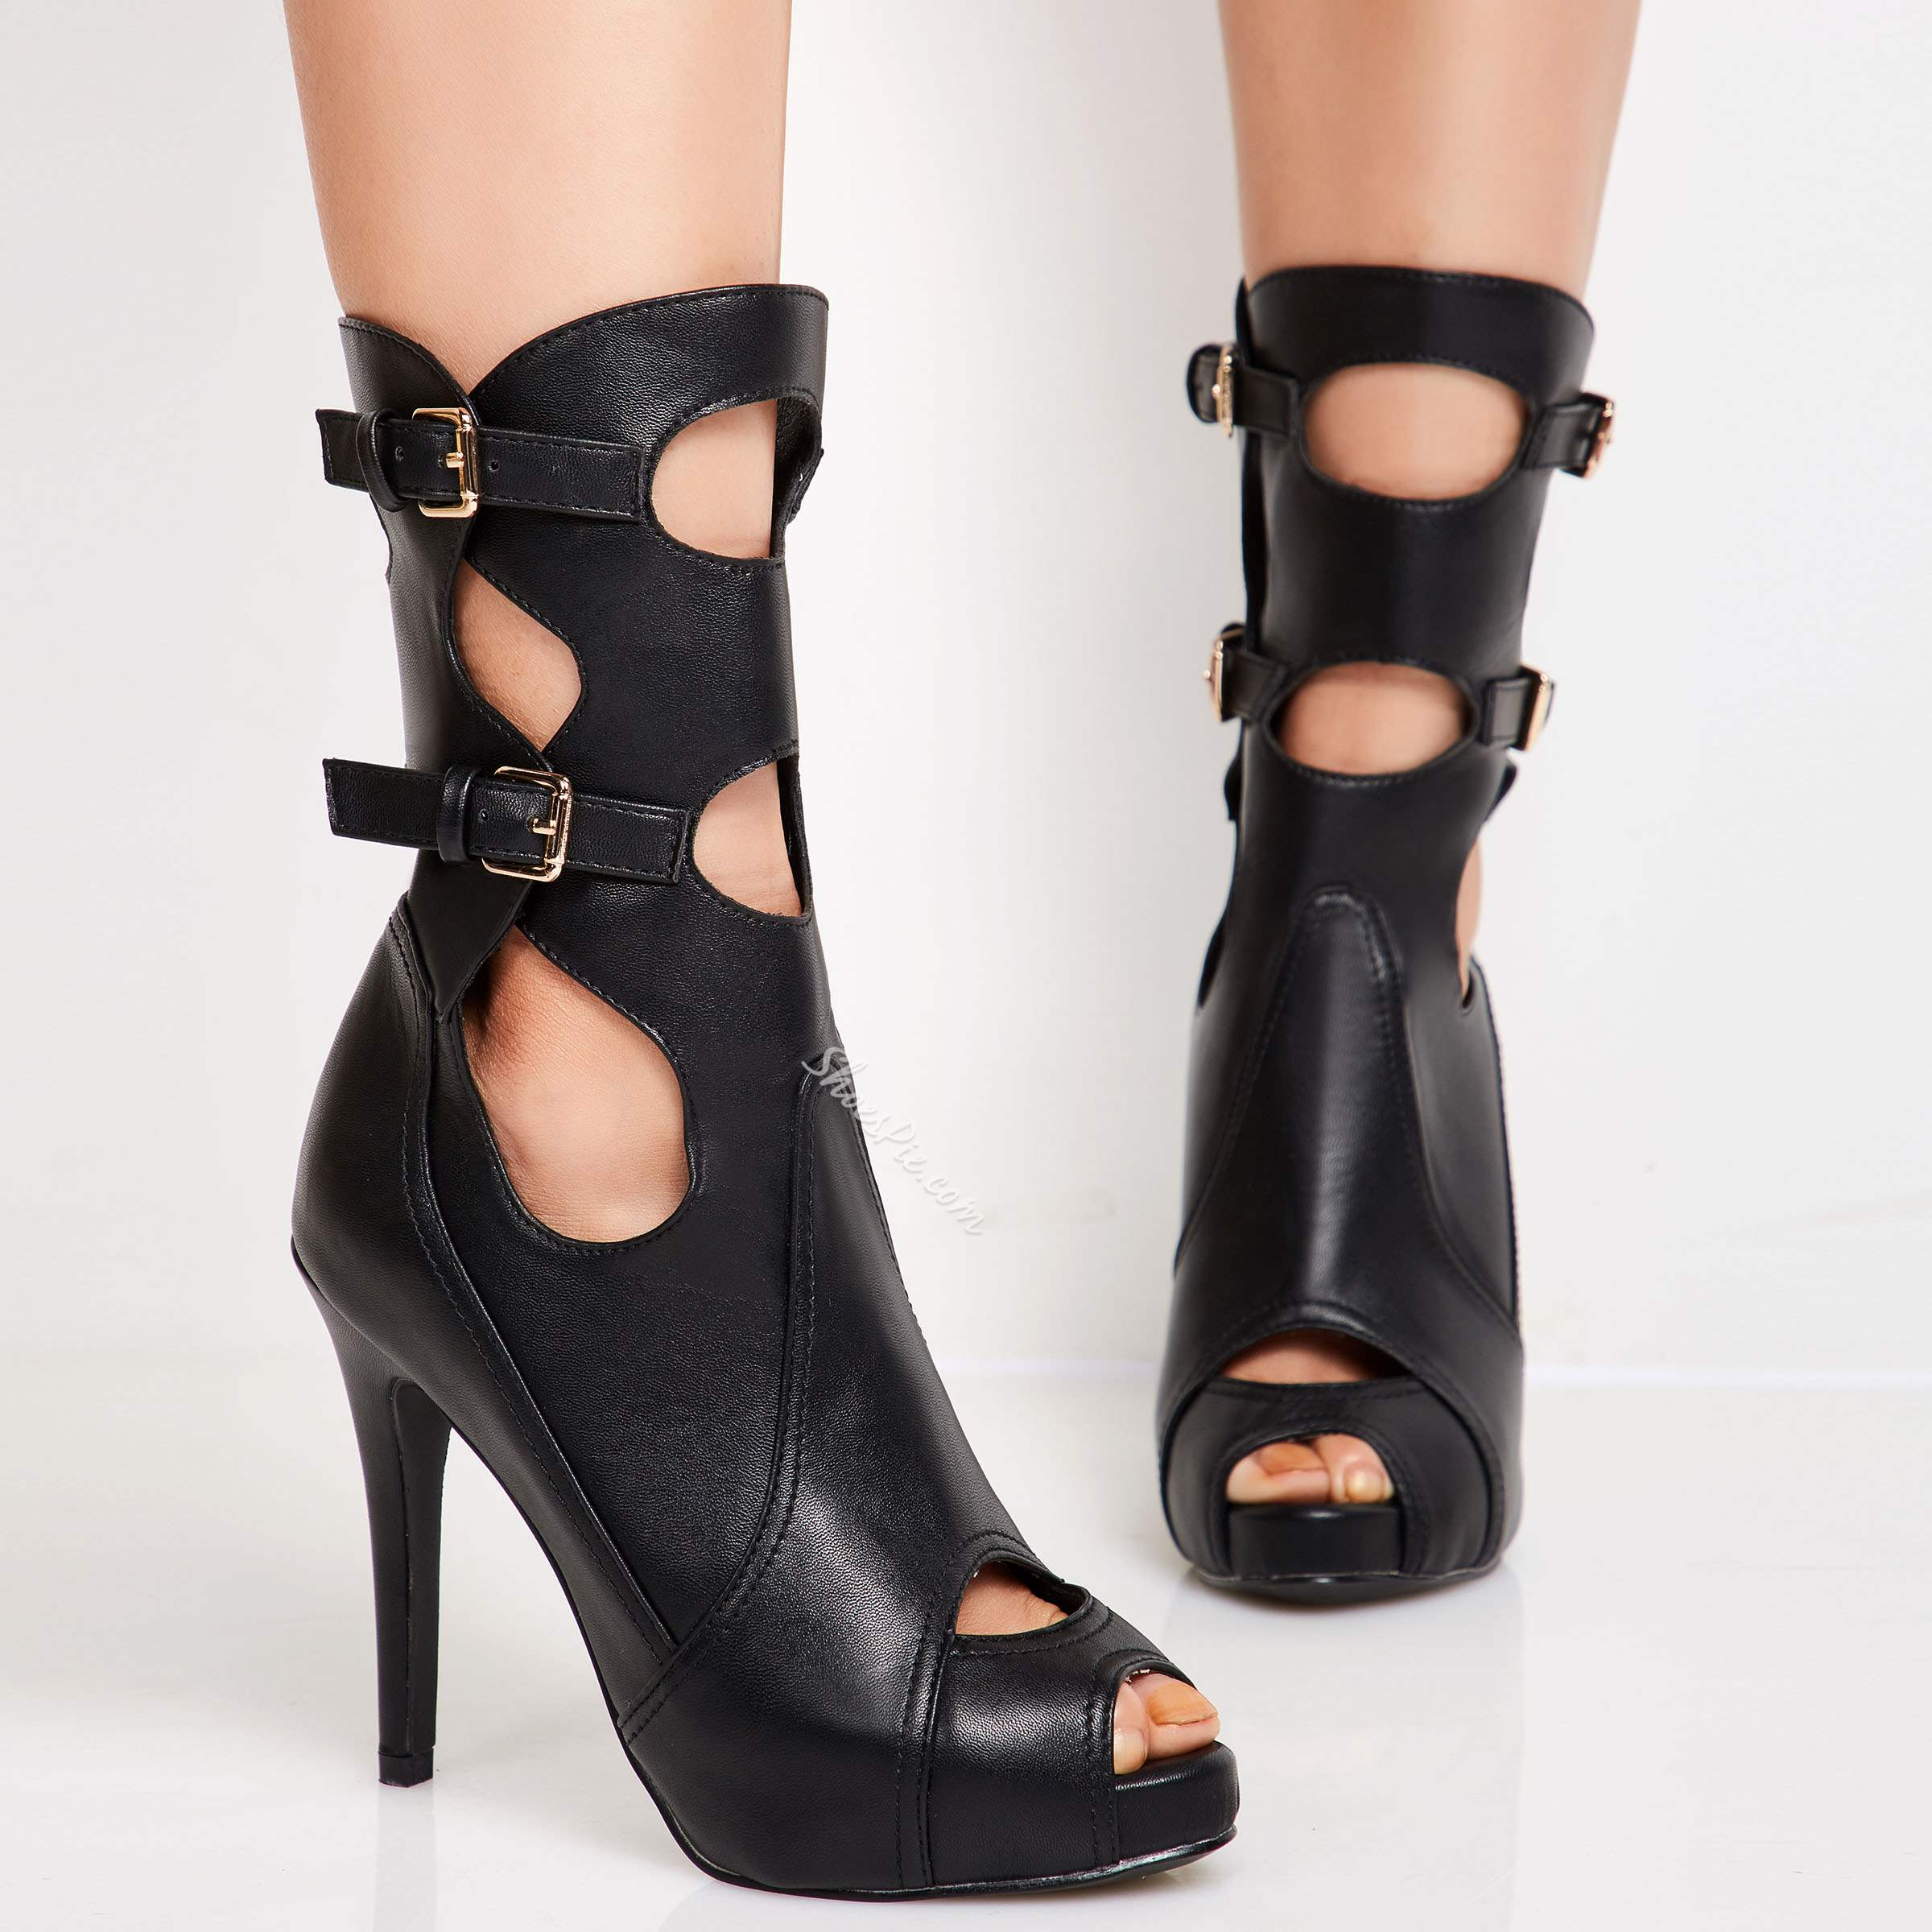 Shoespie Chic Black Cutout Pee Toe Ankle Boots